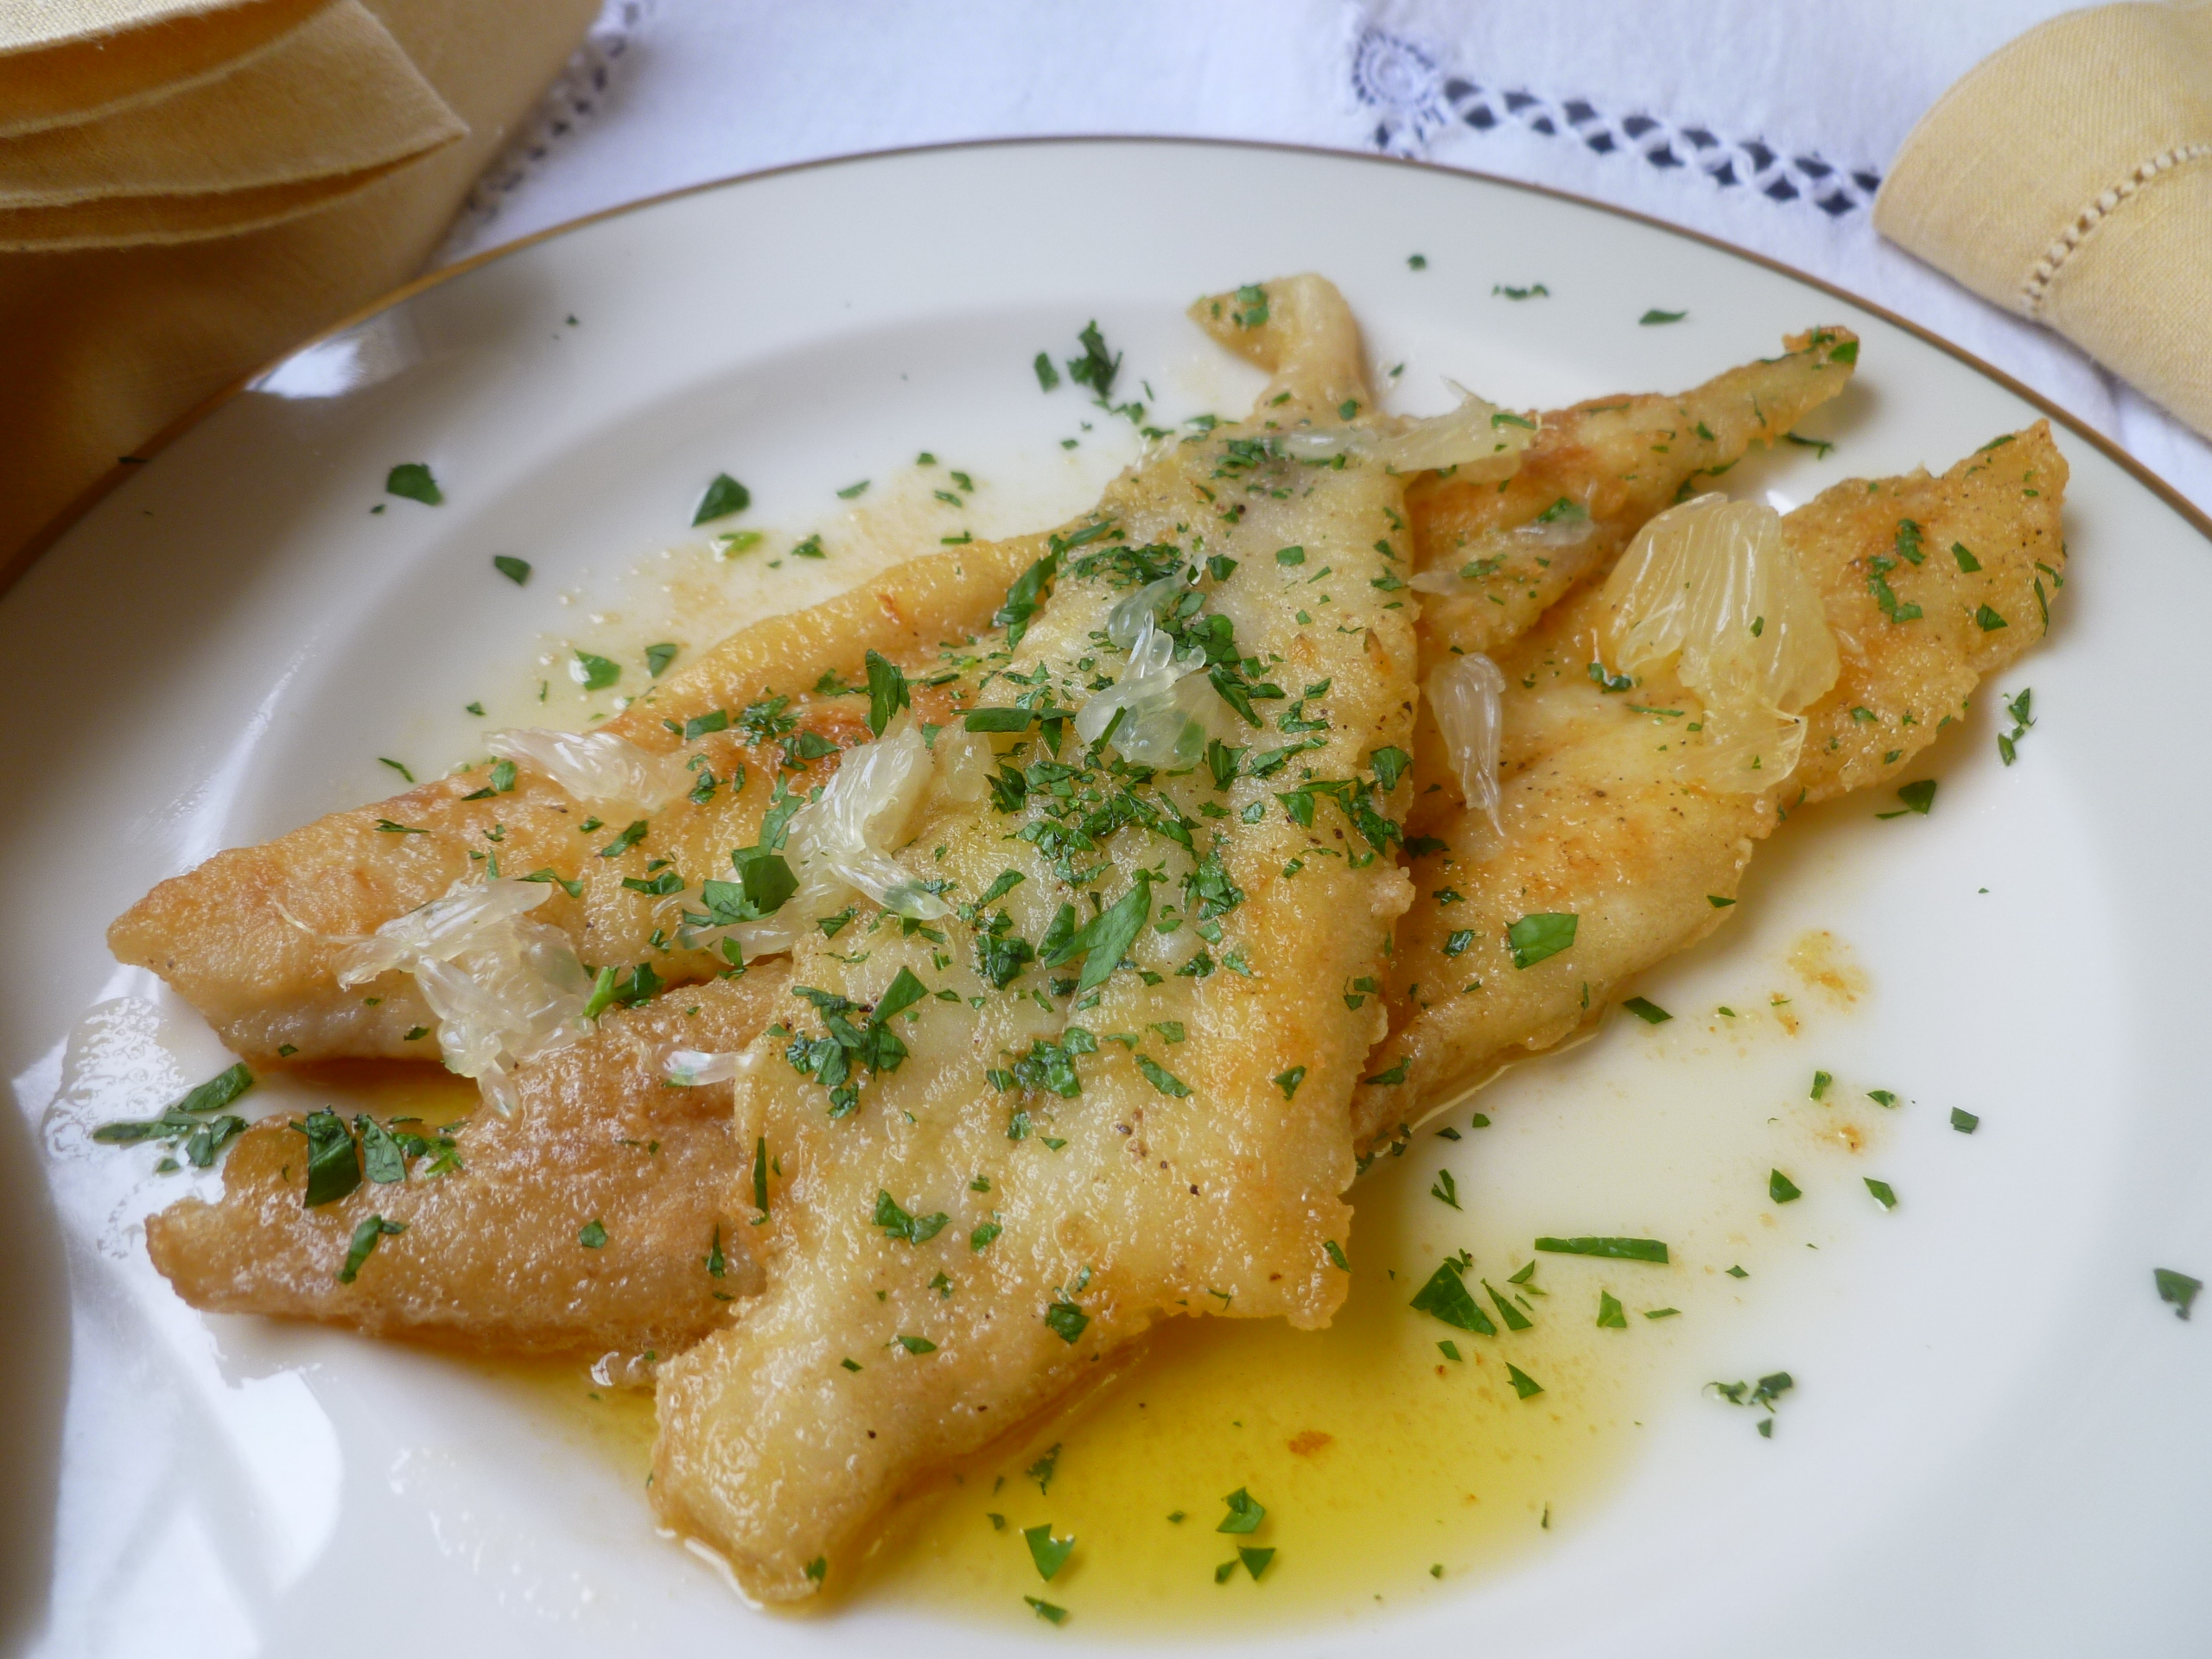 Fillets of sole or flounder with lemon butter sauce for Lemon fish sauce recipe